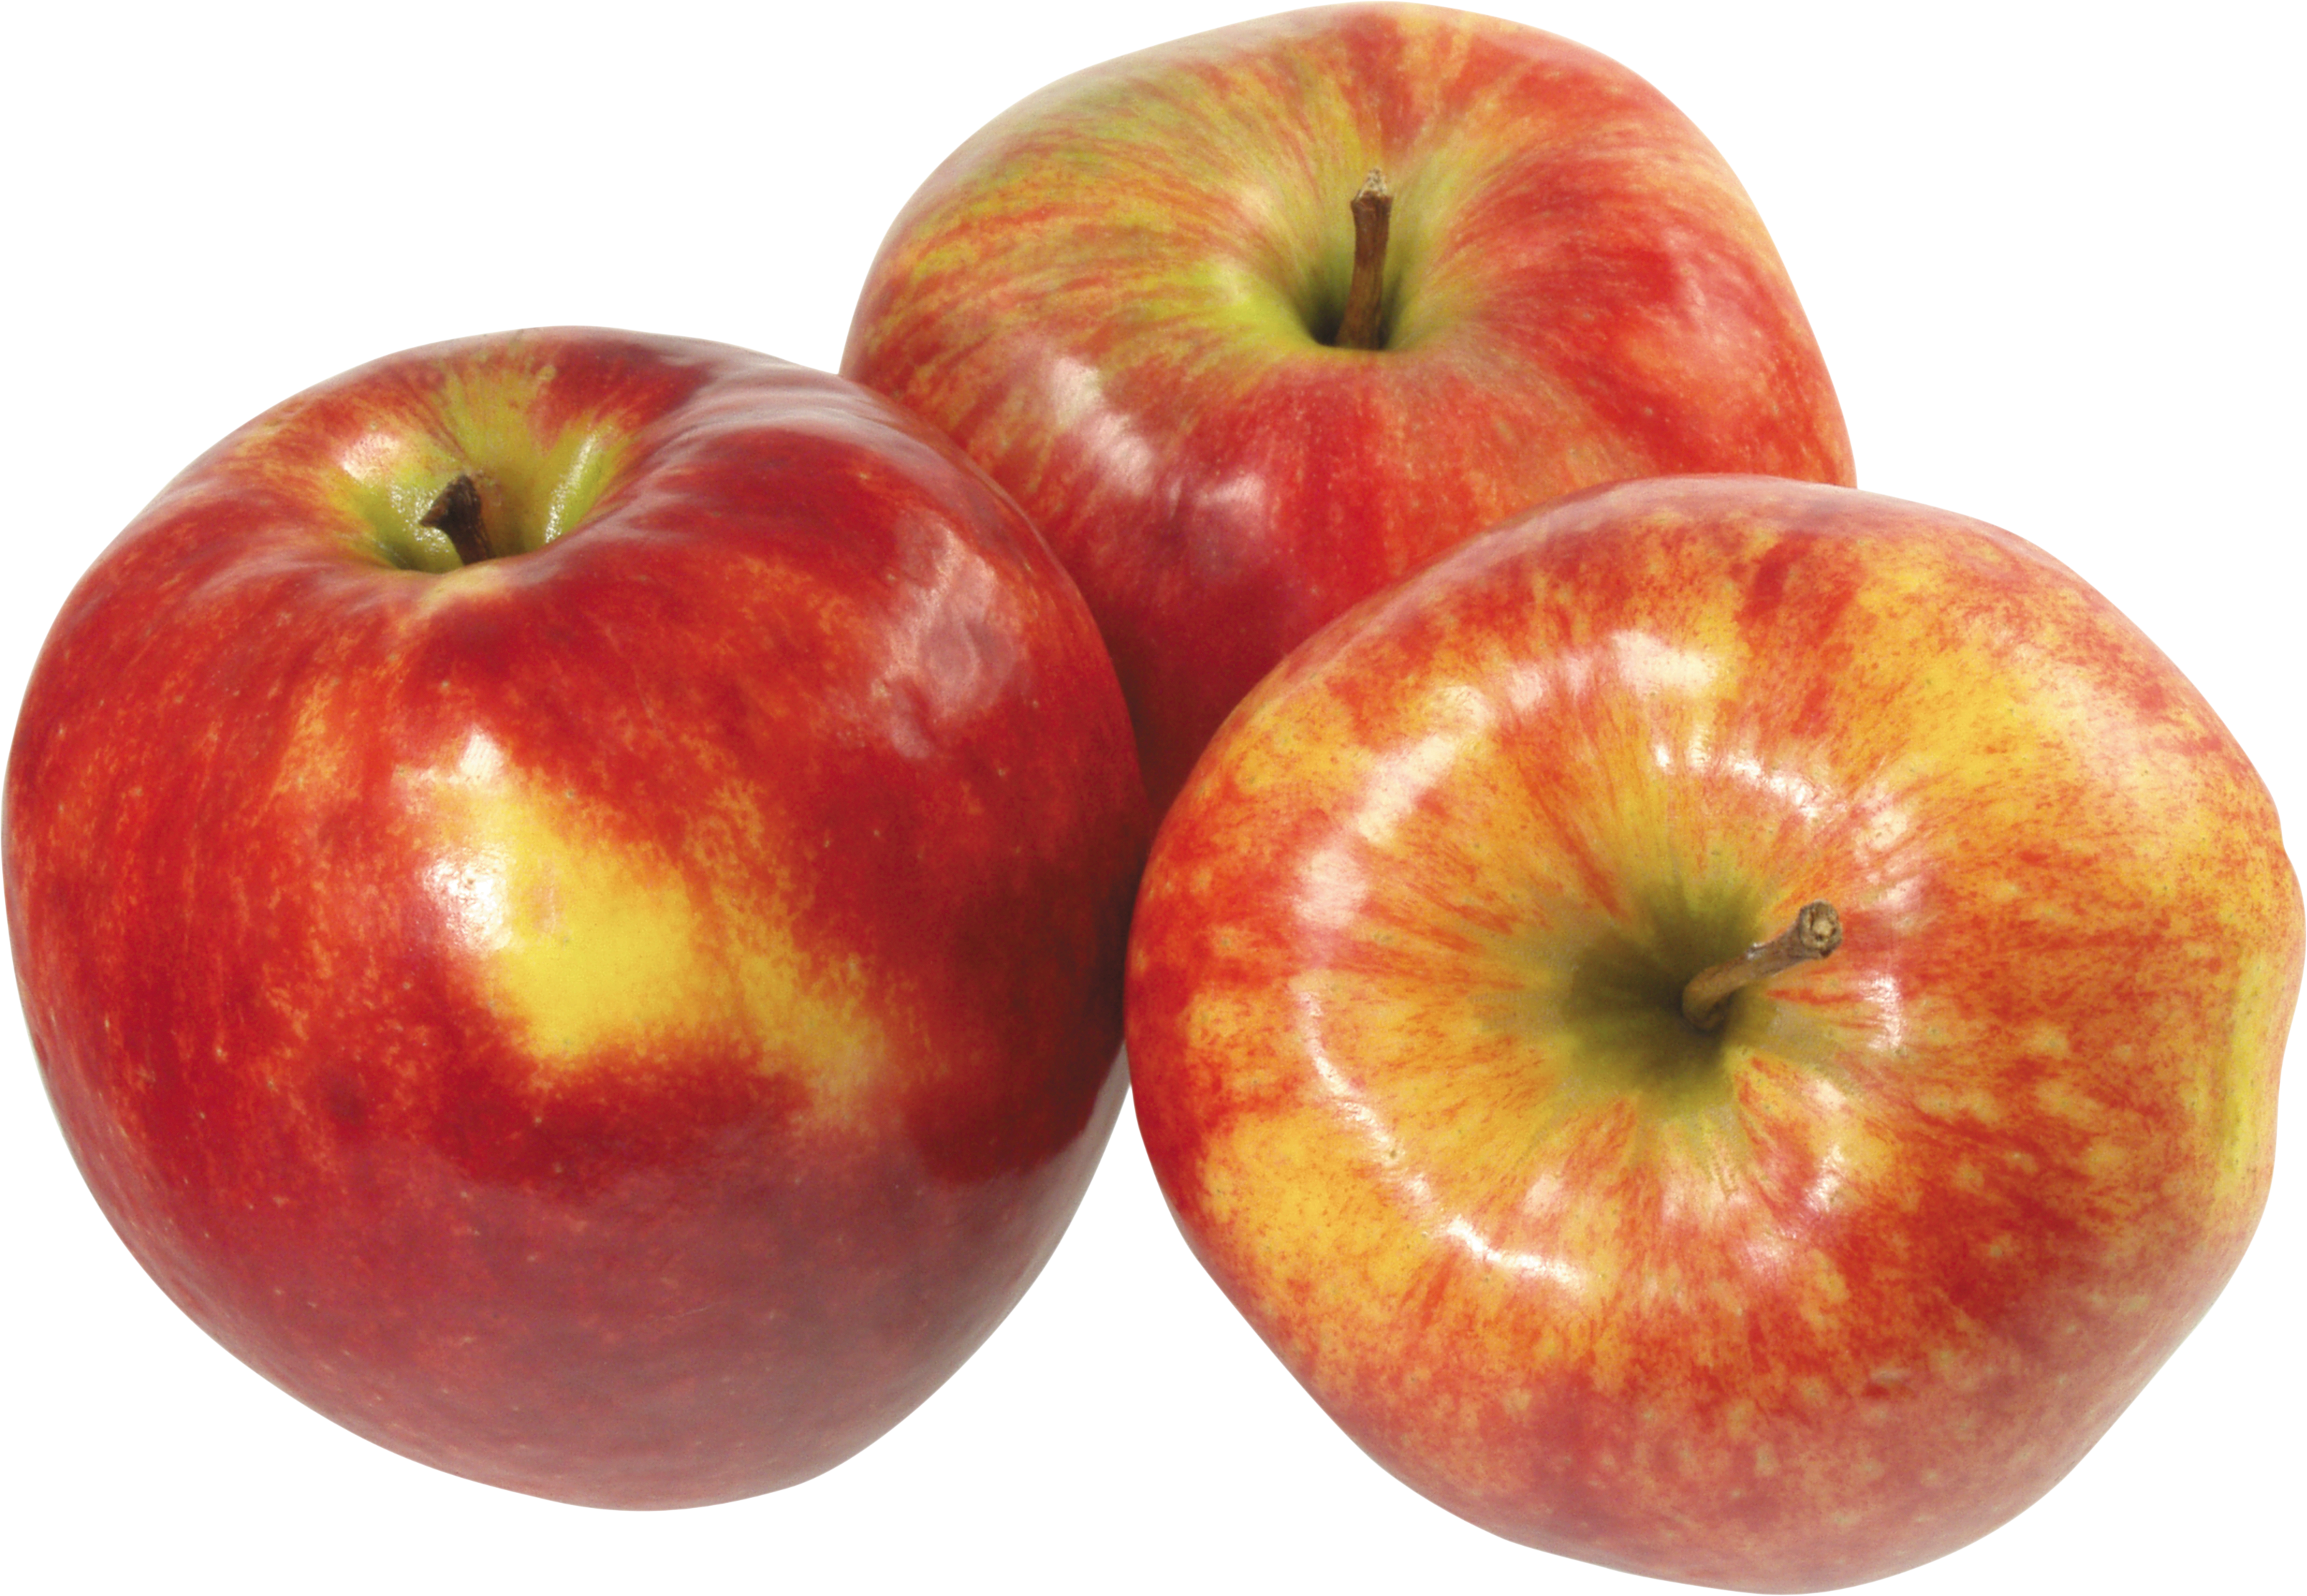 Red Apple's PNG Image.